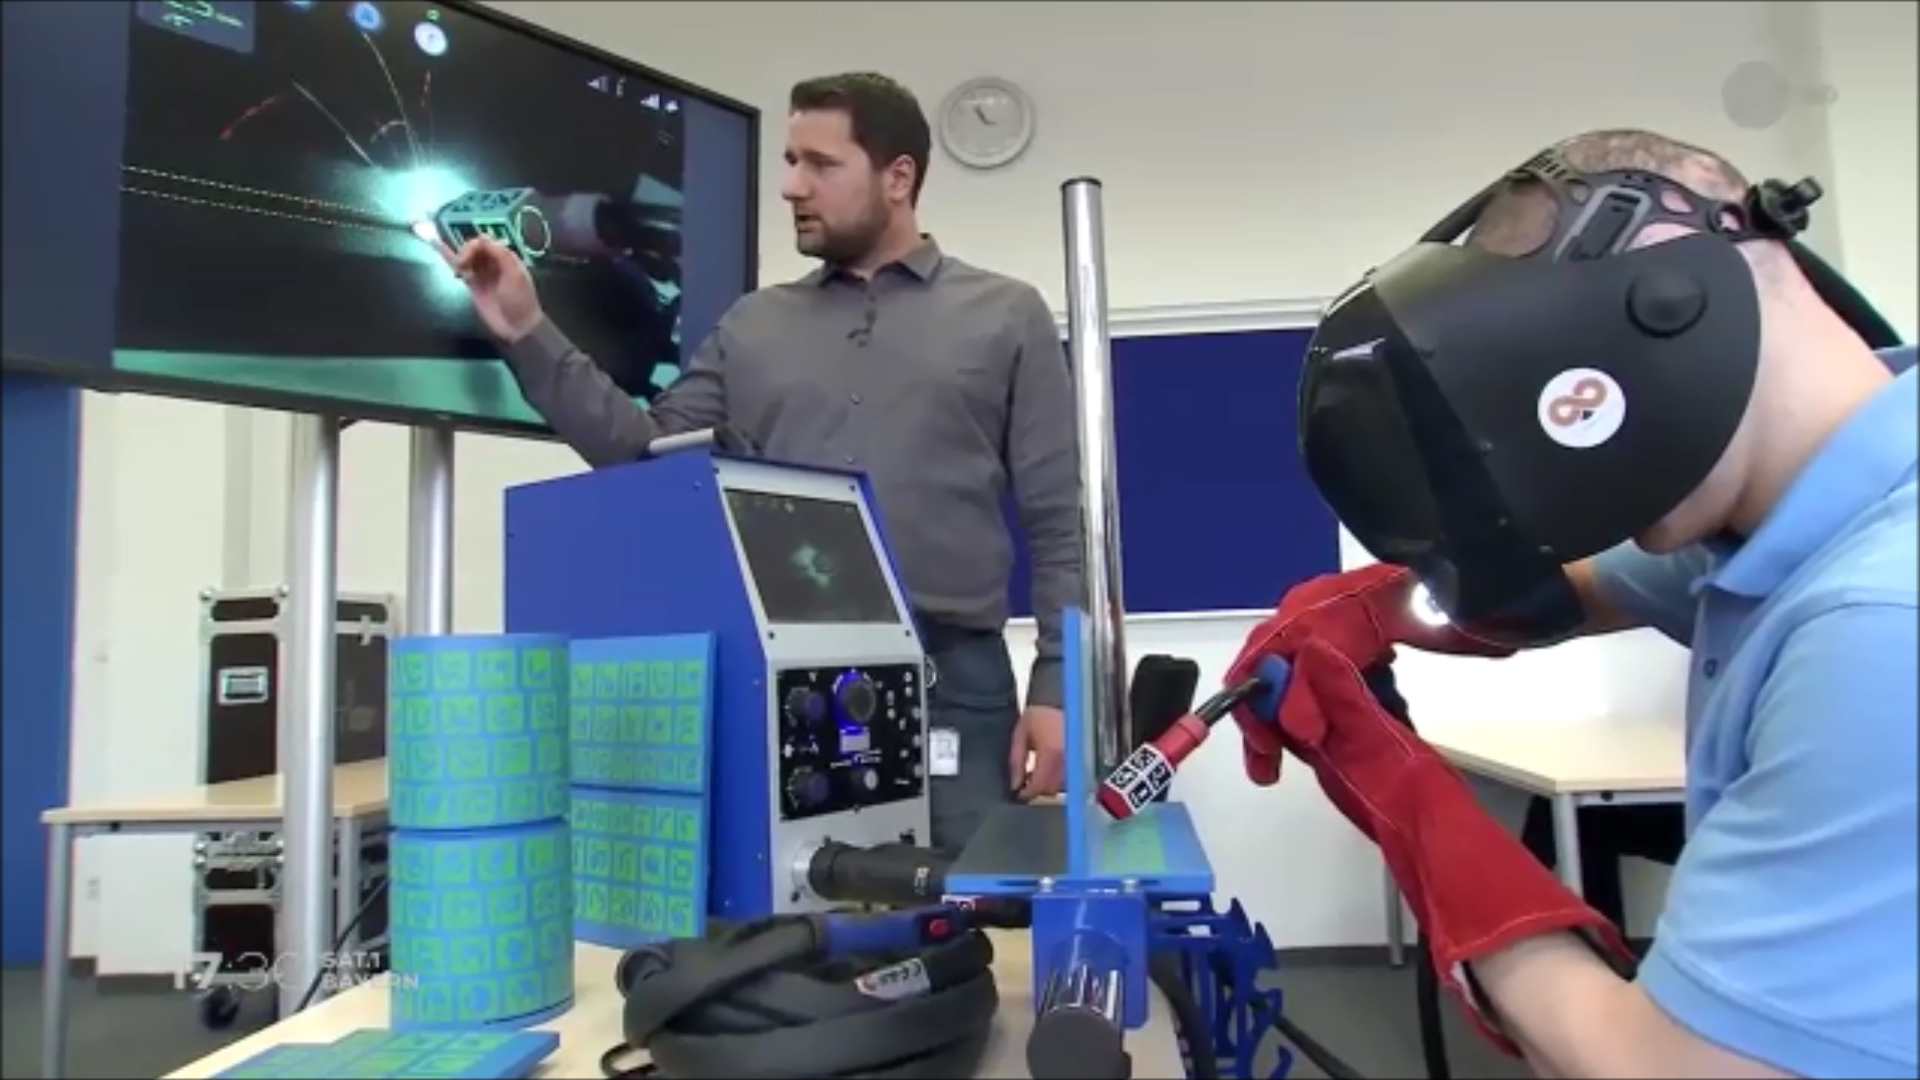 Siemens chooses Augmented Reality welding training system Soldamatic